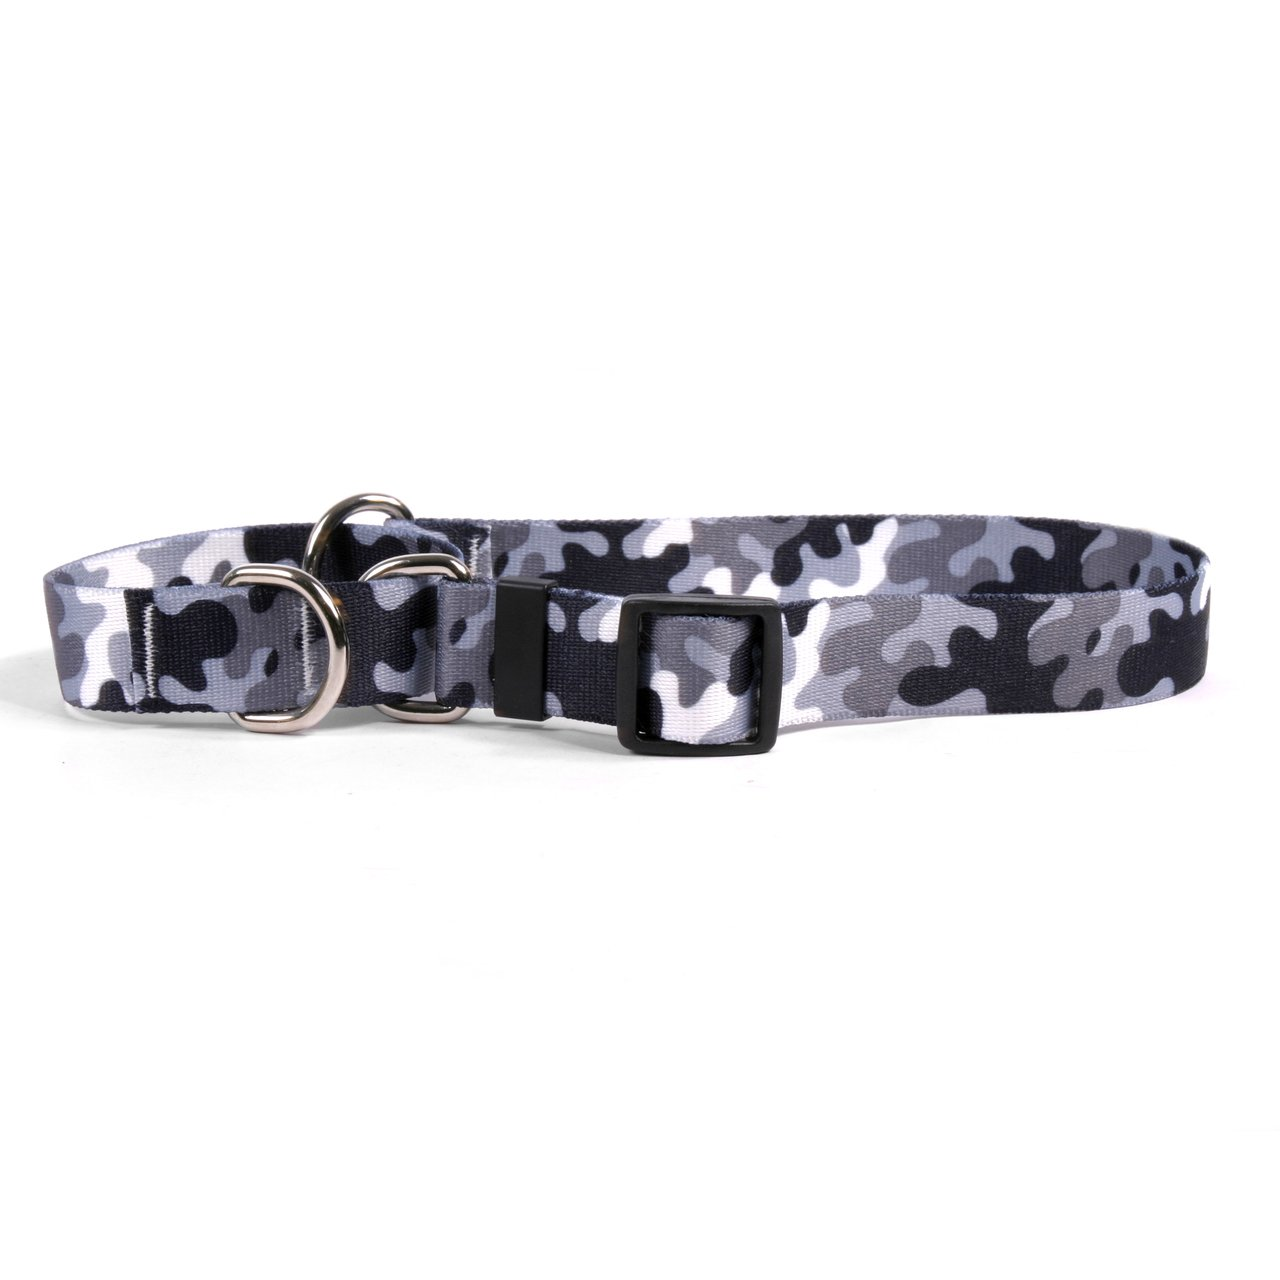 Yellow Dog Design Black And White Camo Martingale Dog Collar Fits Neck 9 To 12'', X-Small/3/4''